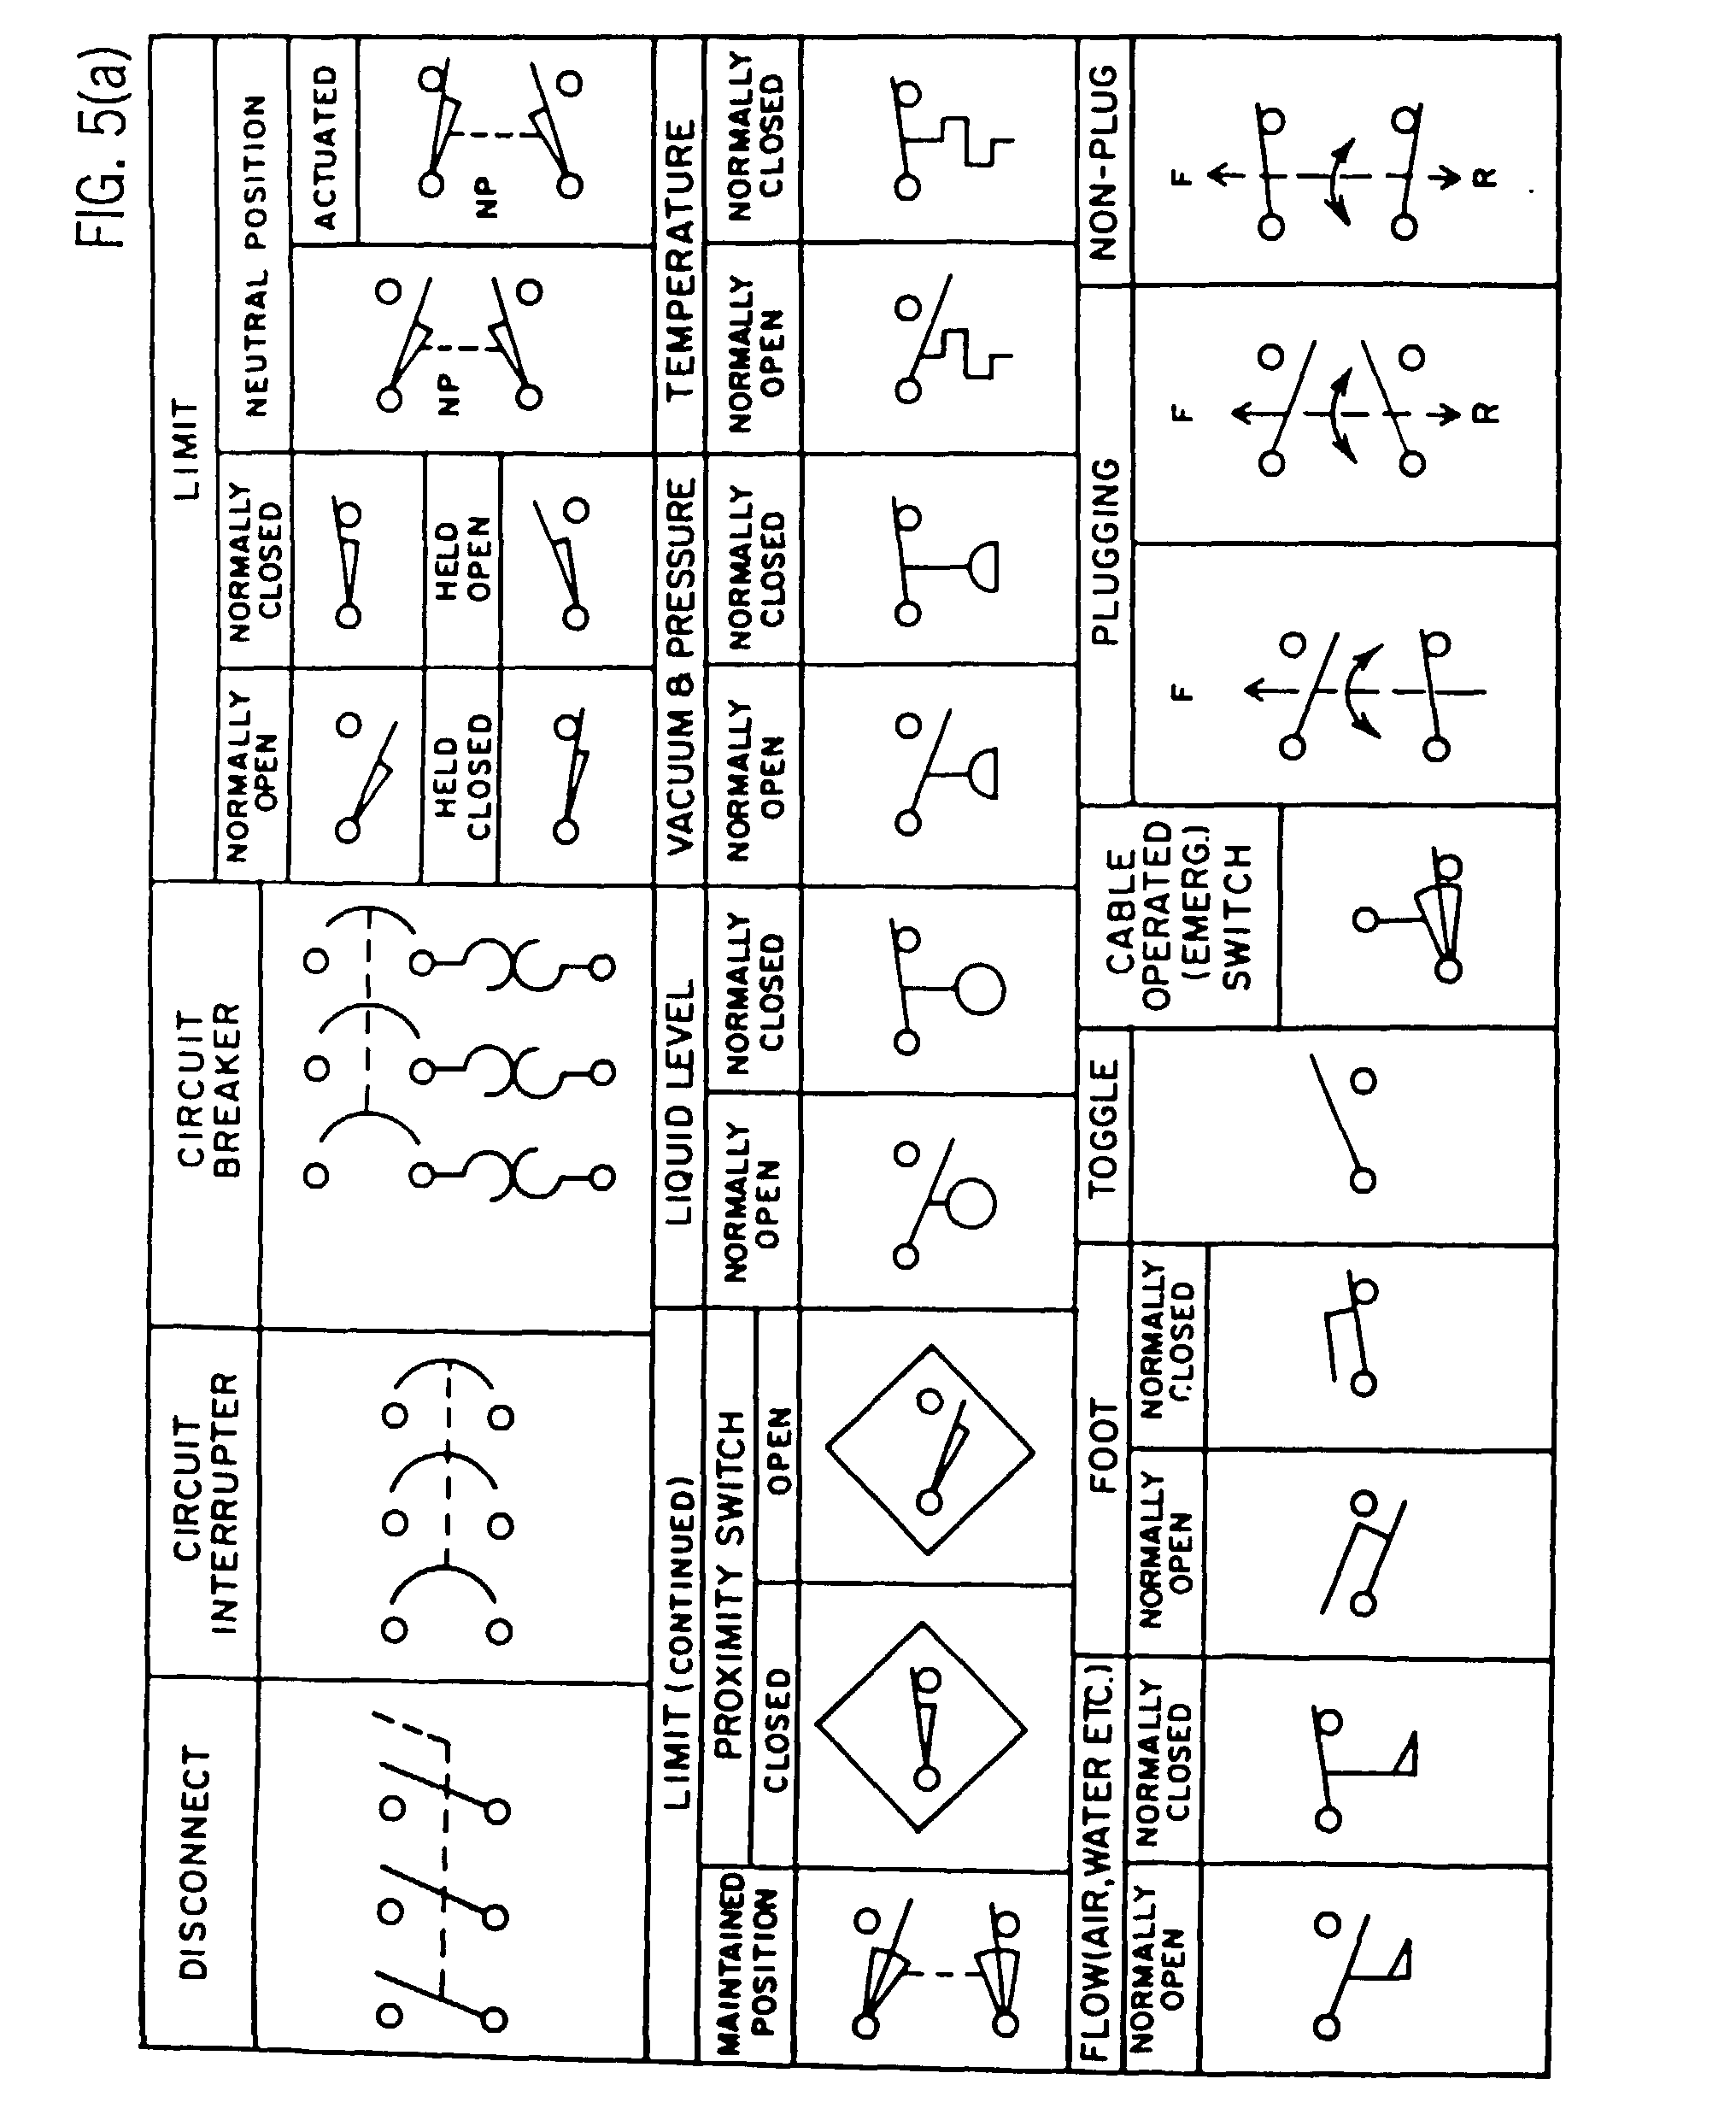 Twisted Pair Wiring Diagram Library Cable Schematic 01160001 Patent Ep0718727b1 Industrial Controllers With Highly Symbol At